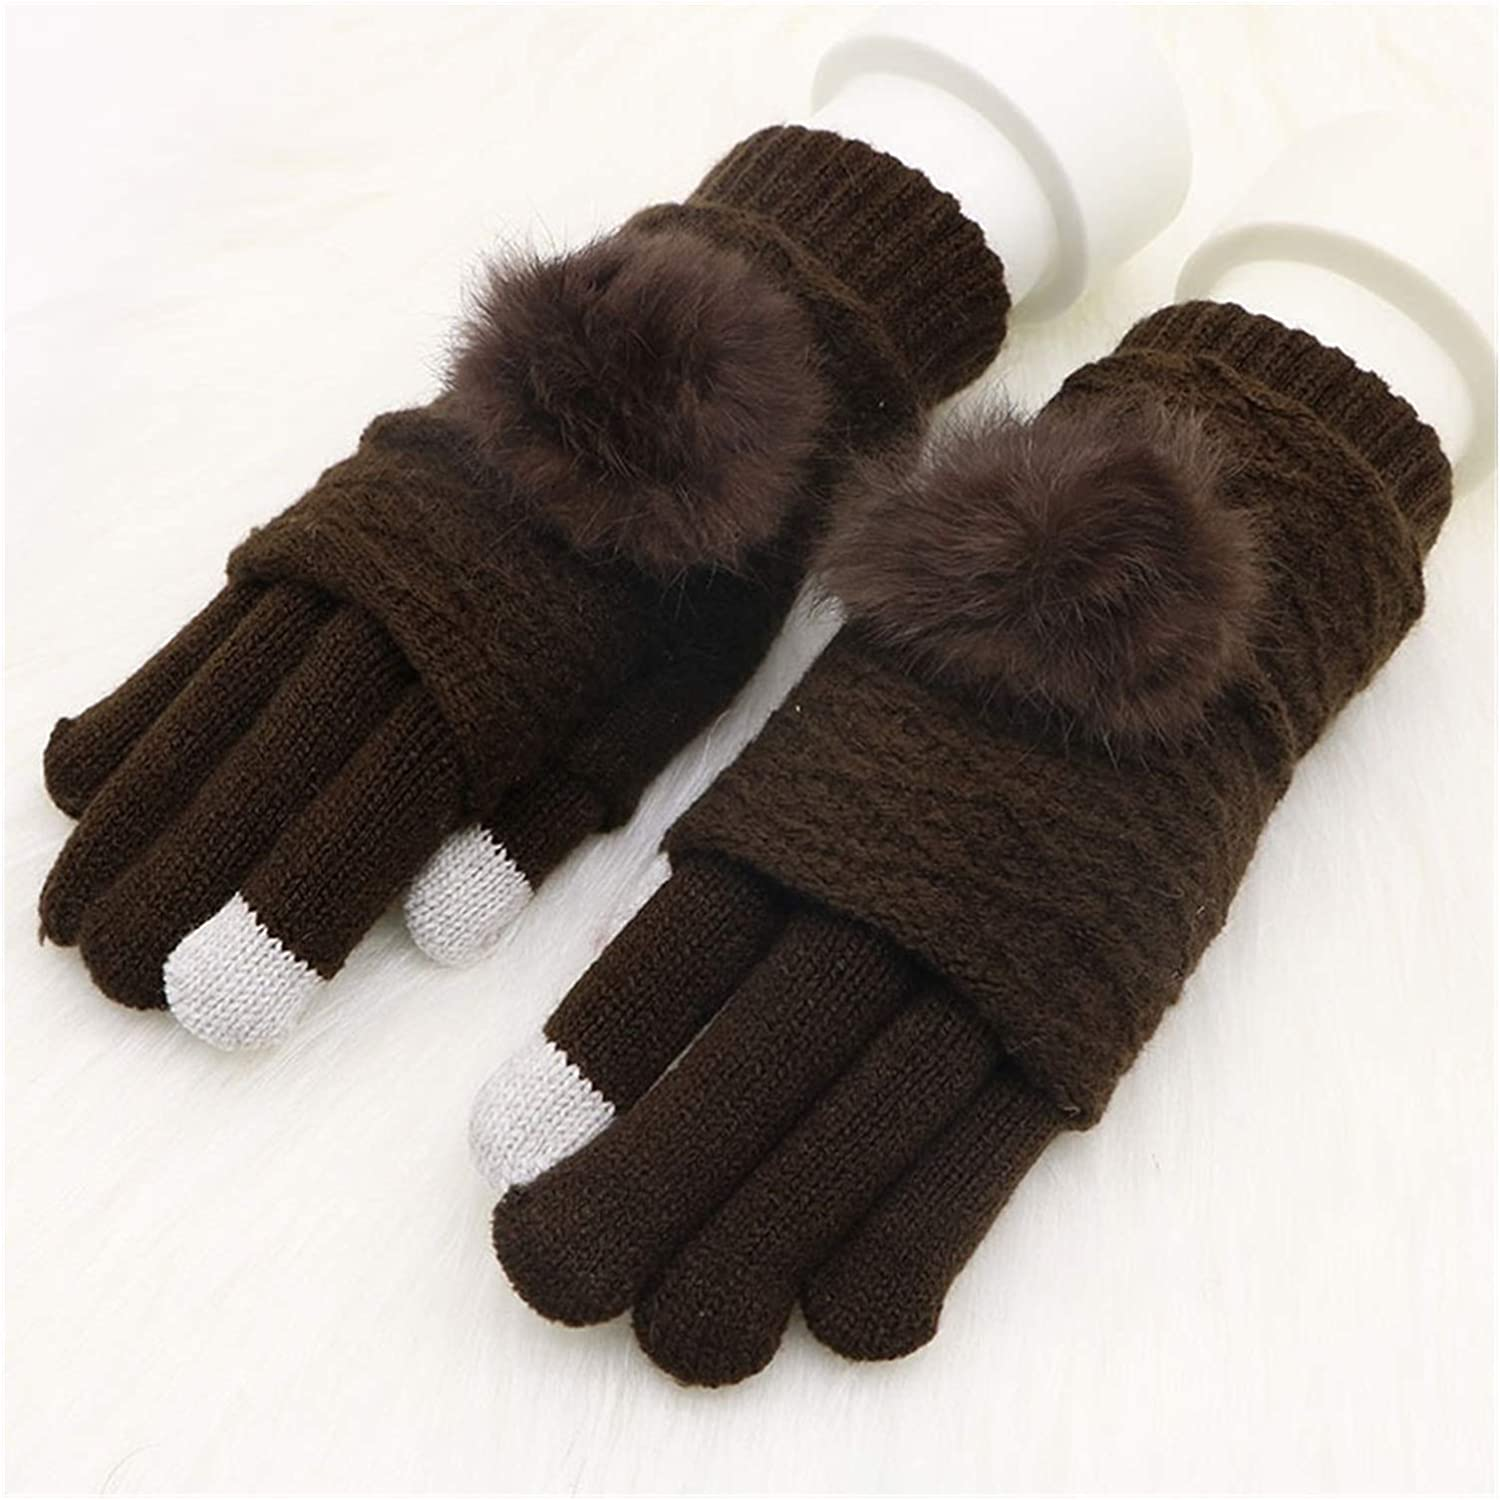 ZHIZI Warm Gloves Women's Warm Gloves Thickened Non-Slip Detachable Touch Screen Information Gloves (Color : Brown)